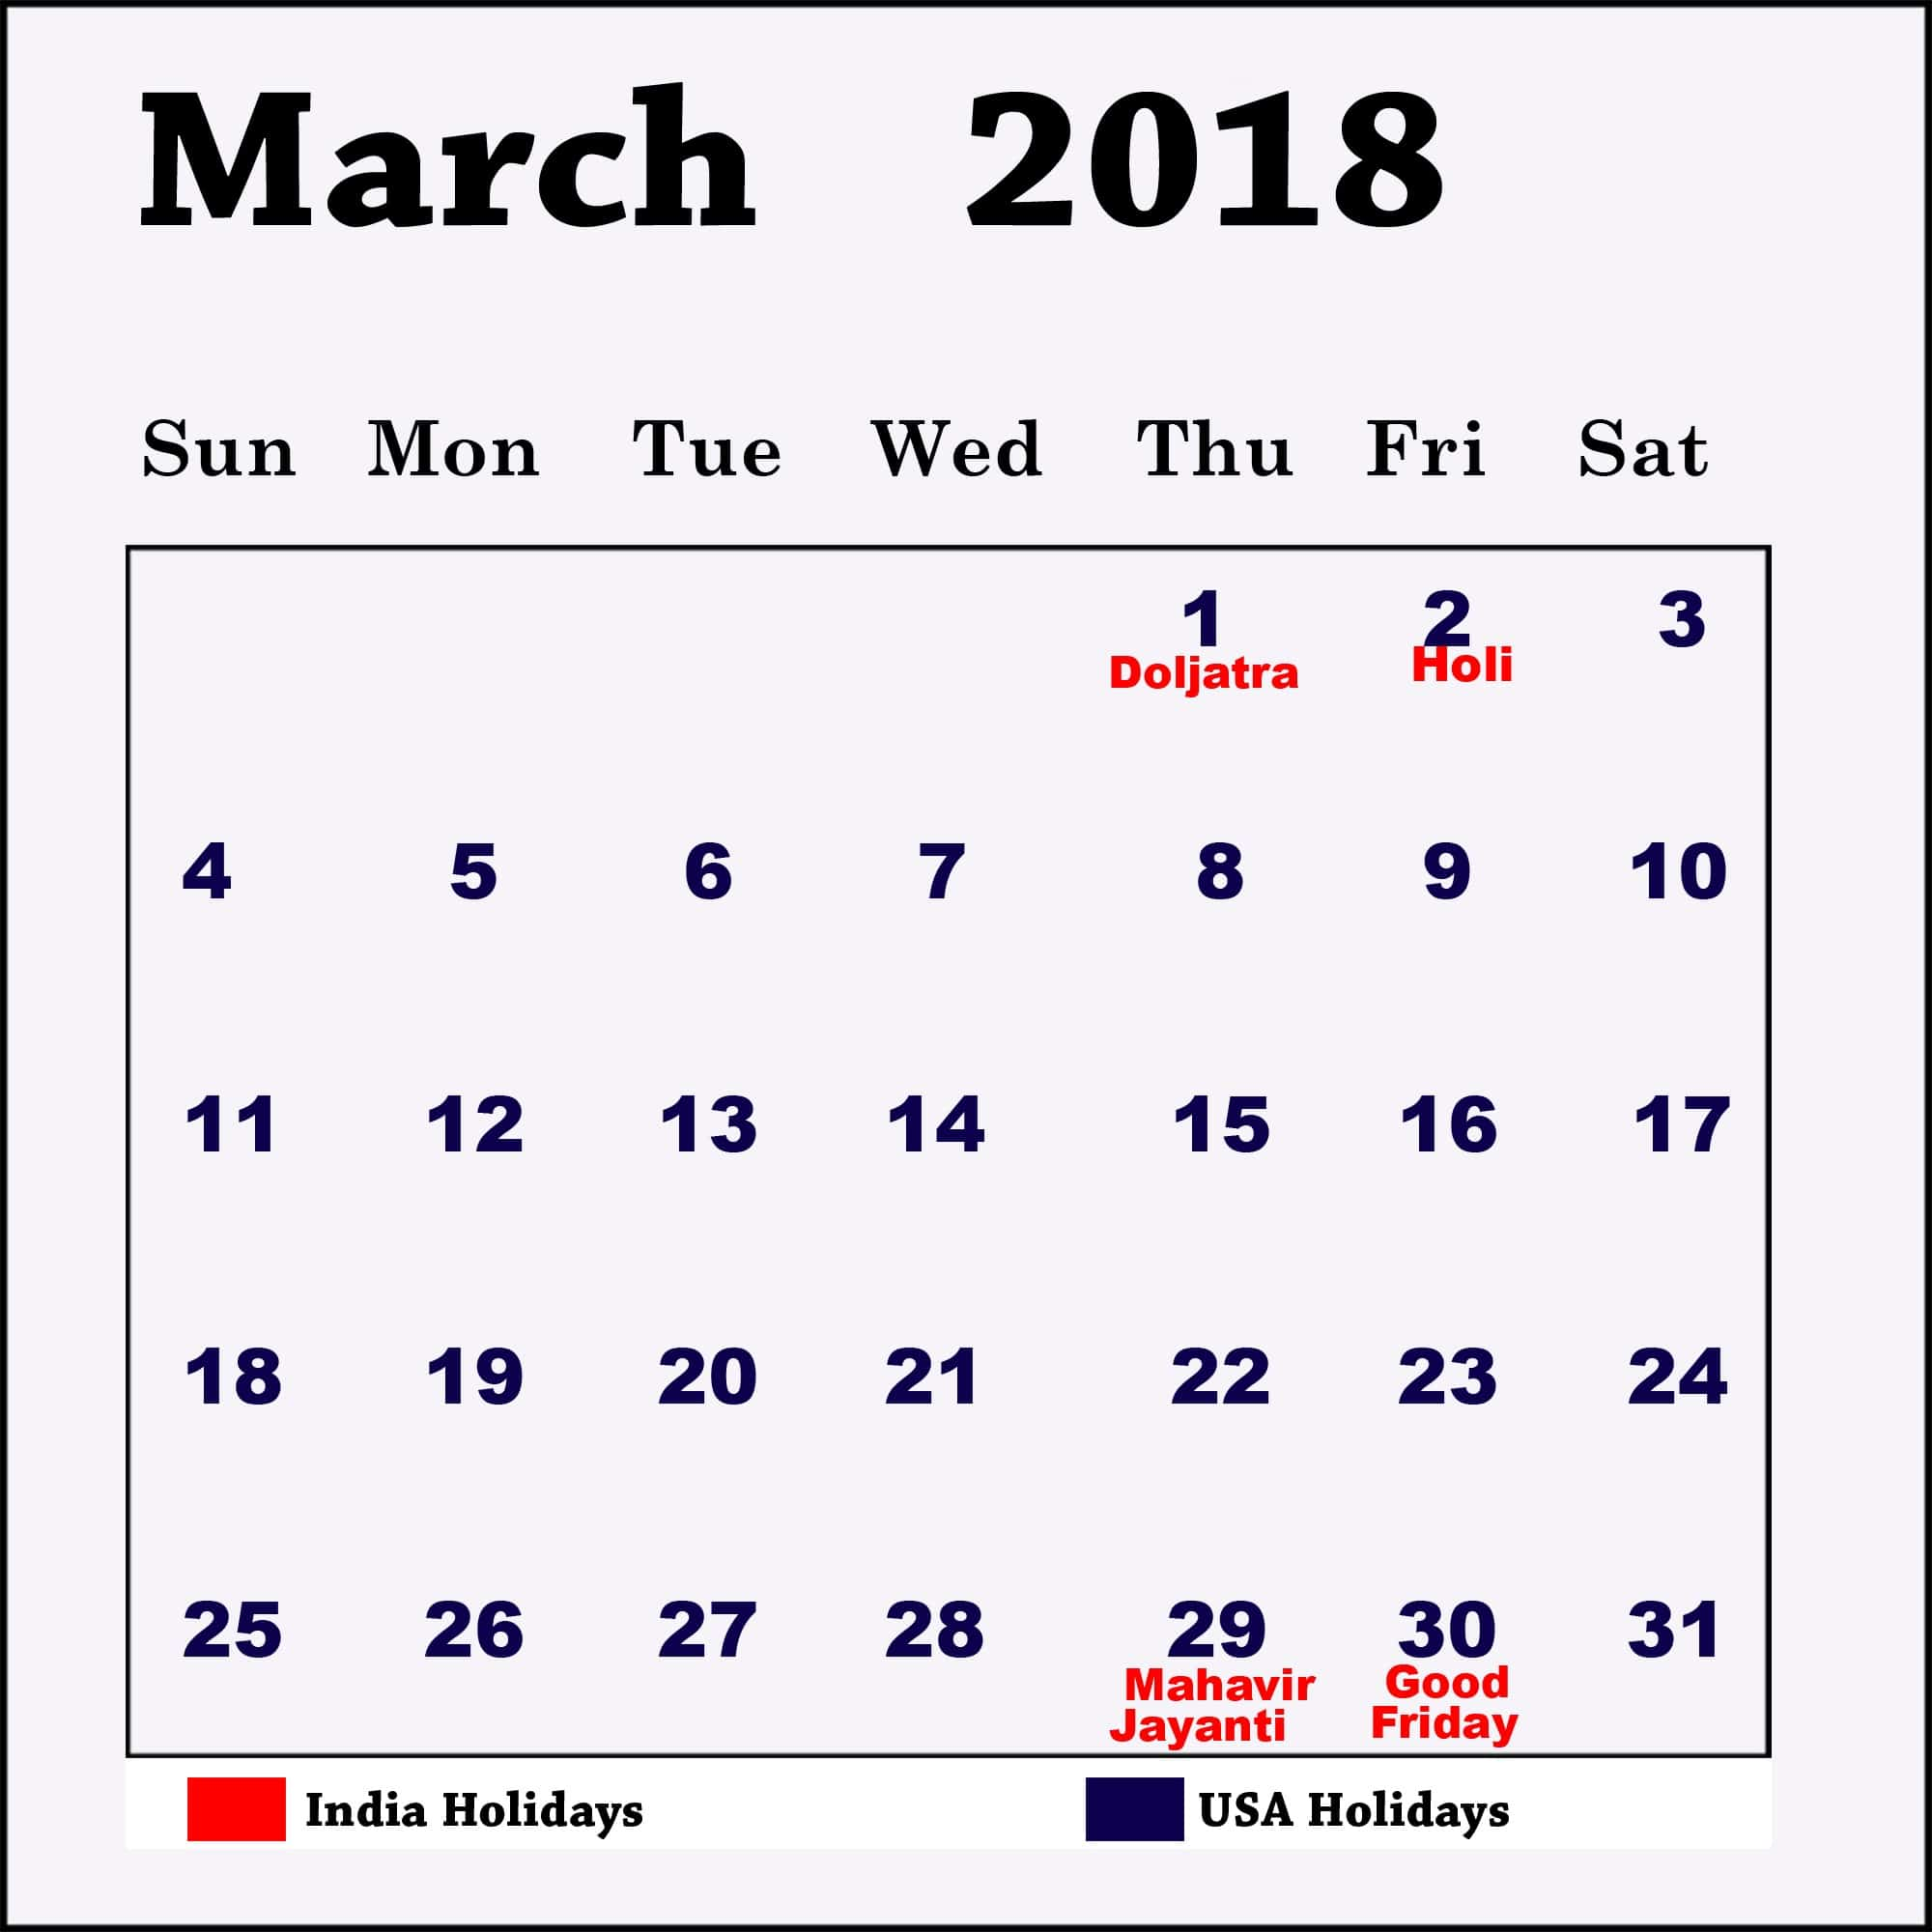 March Calendar 2018 Kalnirnay in Marathi